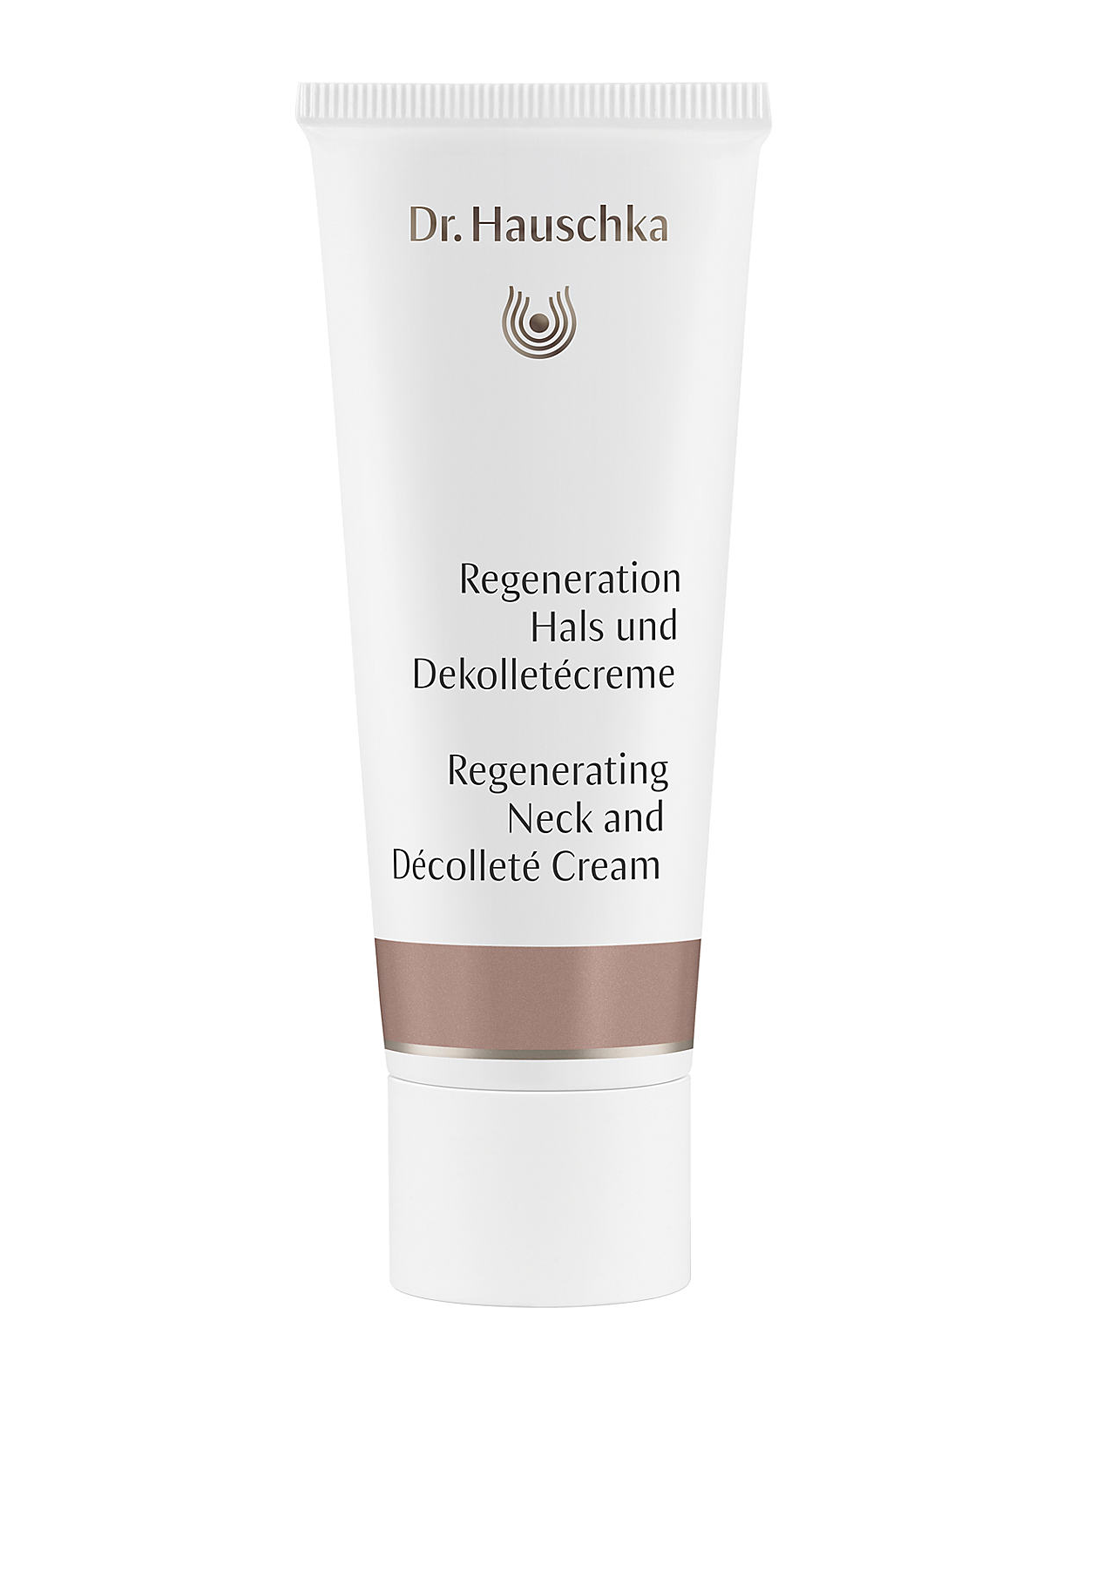 Dr. Hauschka Regenerating Neck and Decollete Cream, 40ml